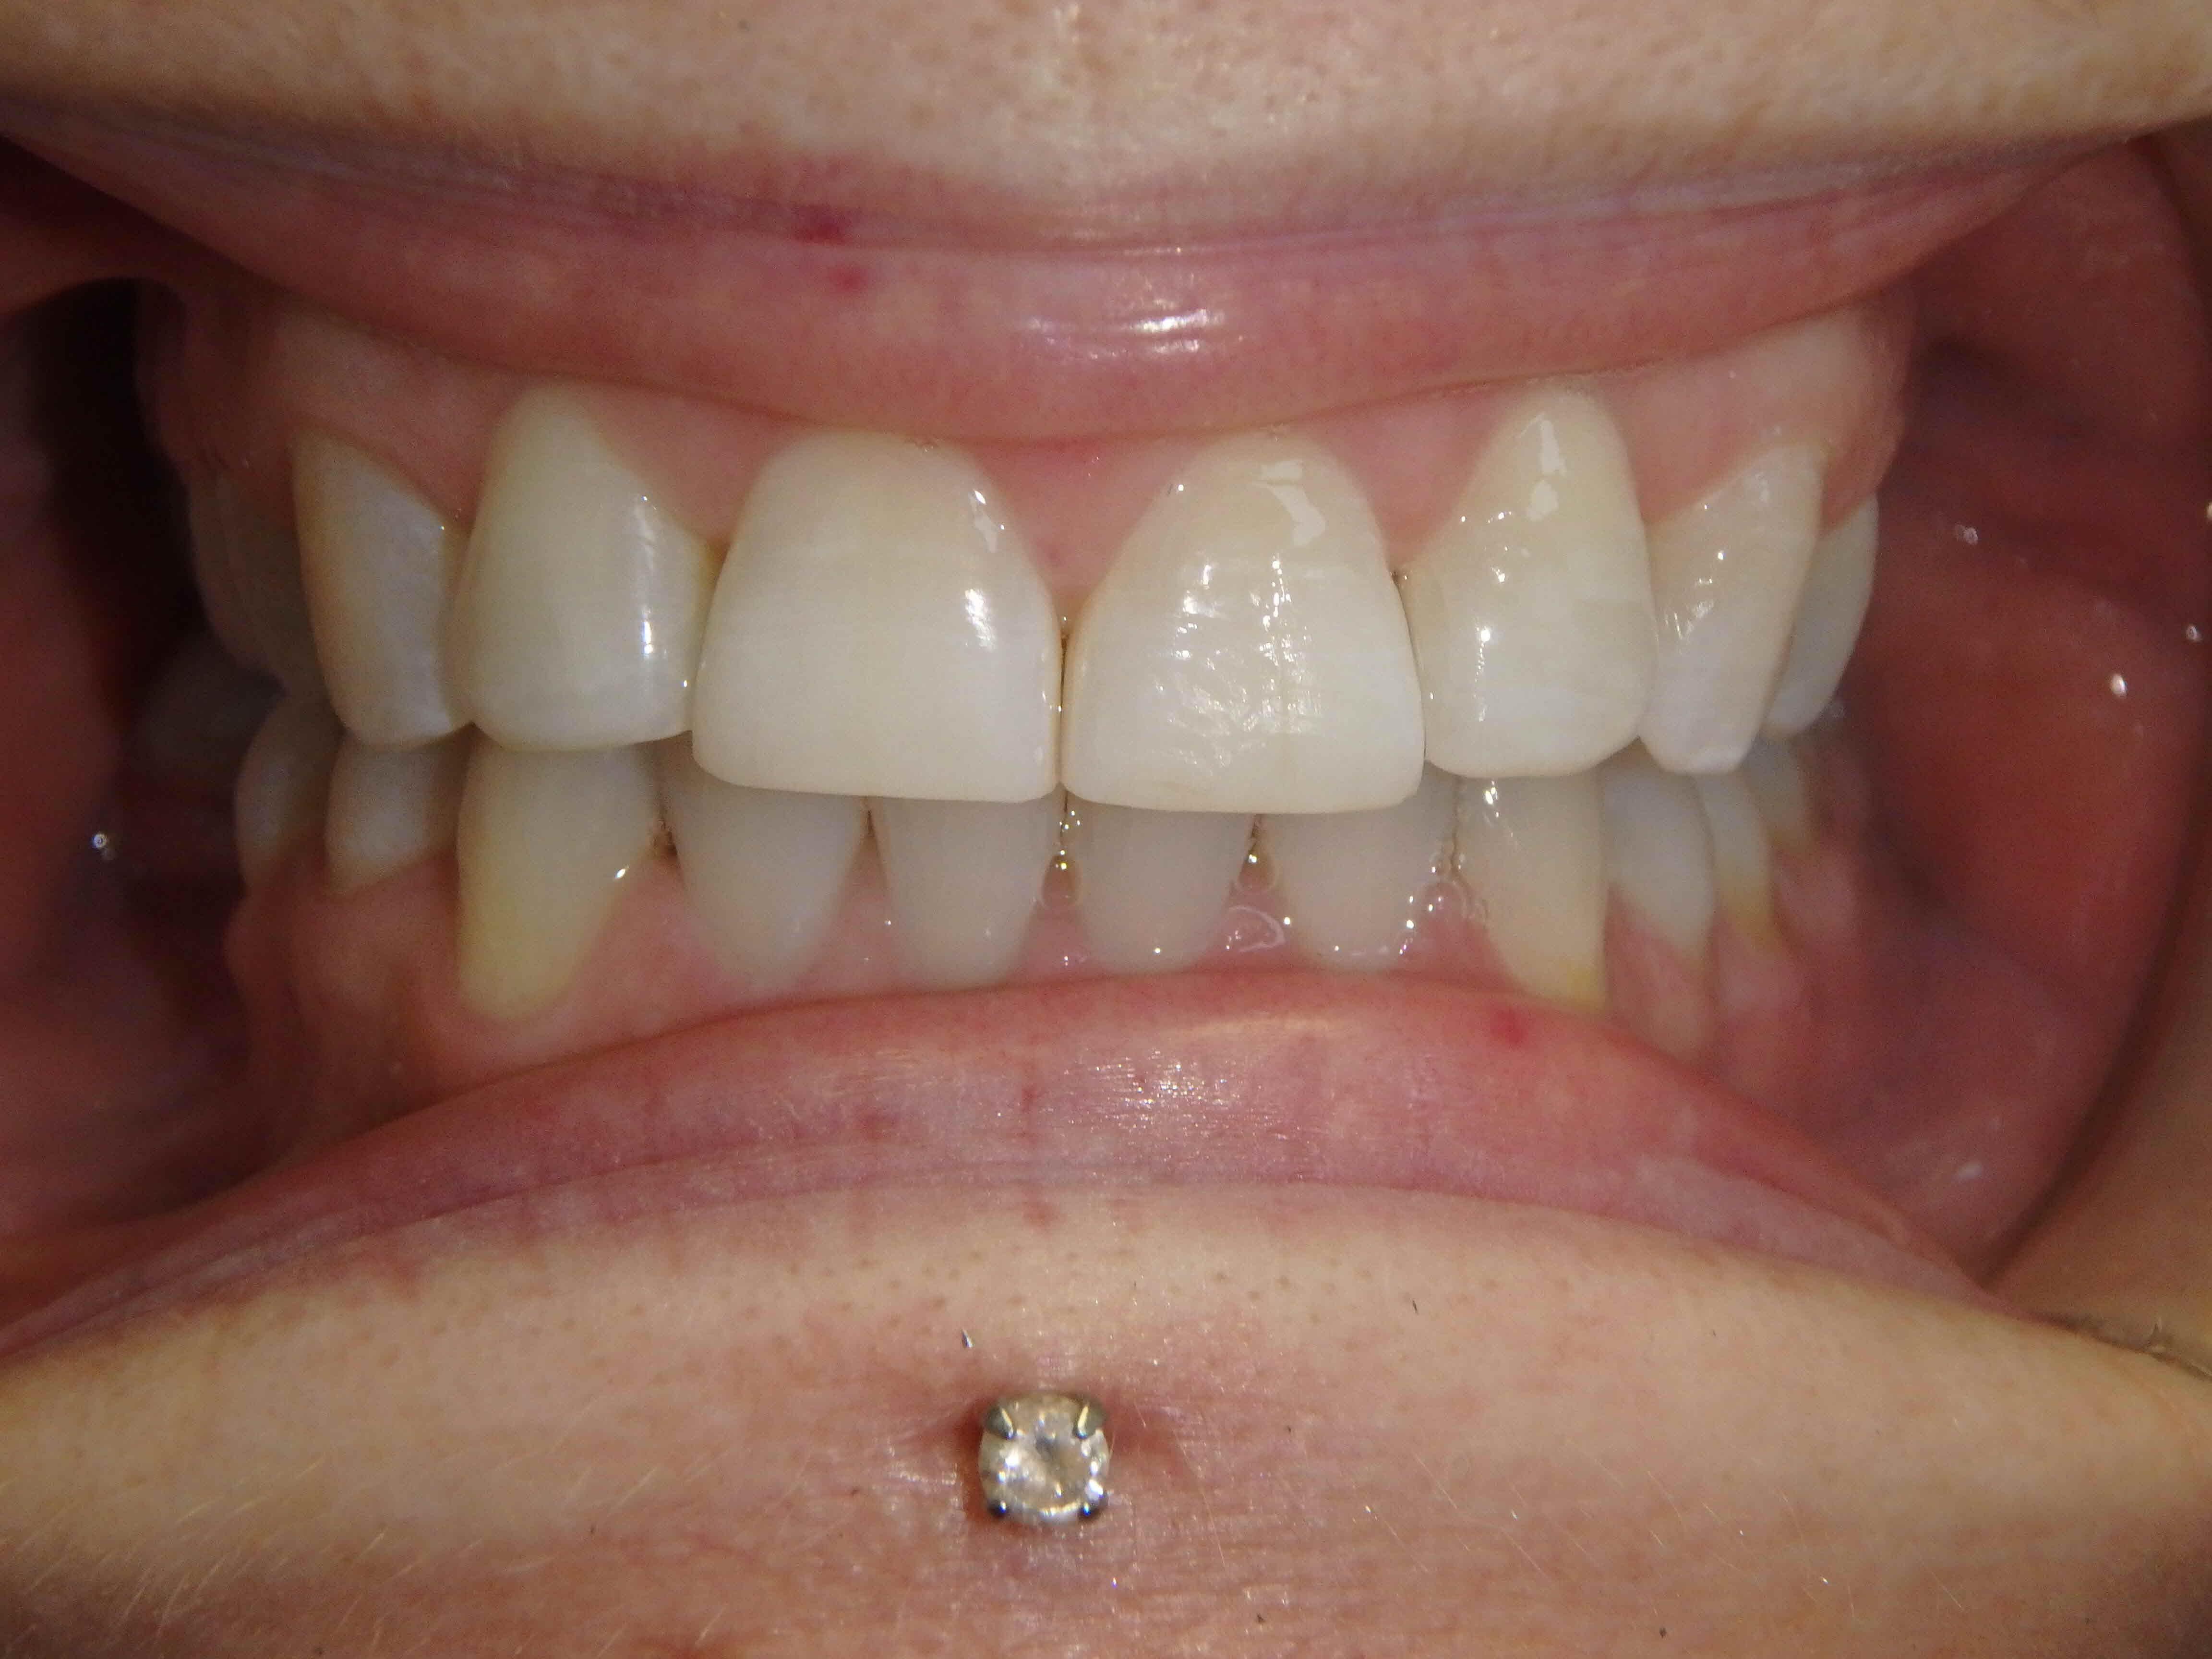 Completion of Invisalign treatment